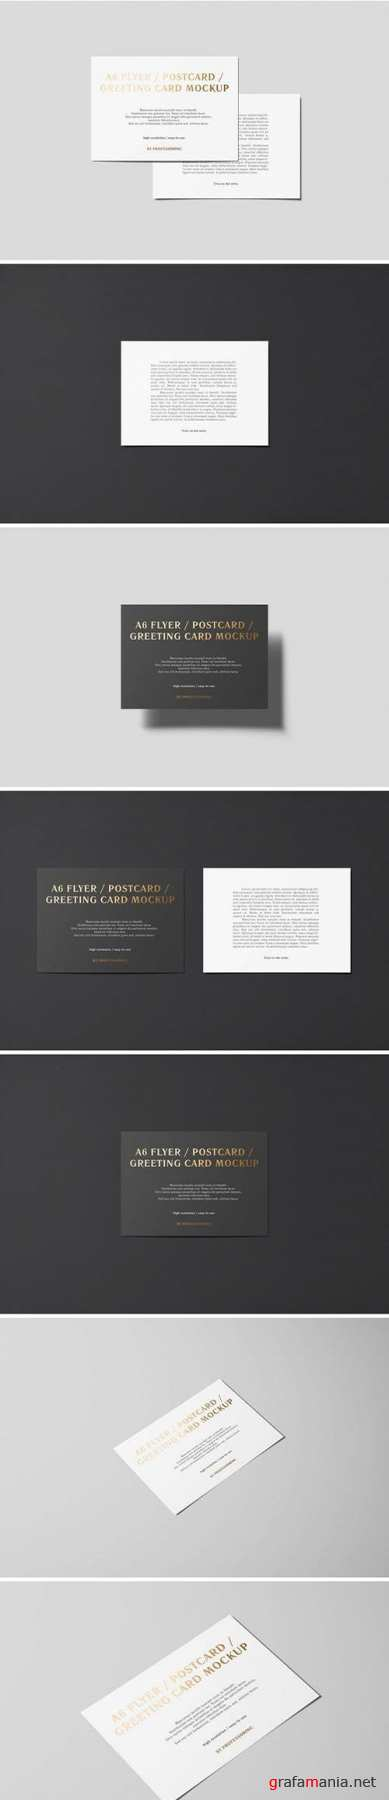 A6 Flyer / Postcard / Greeting Card Mockup